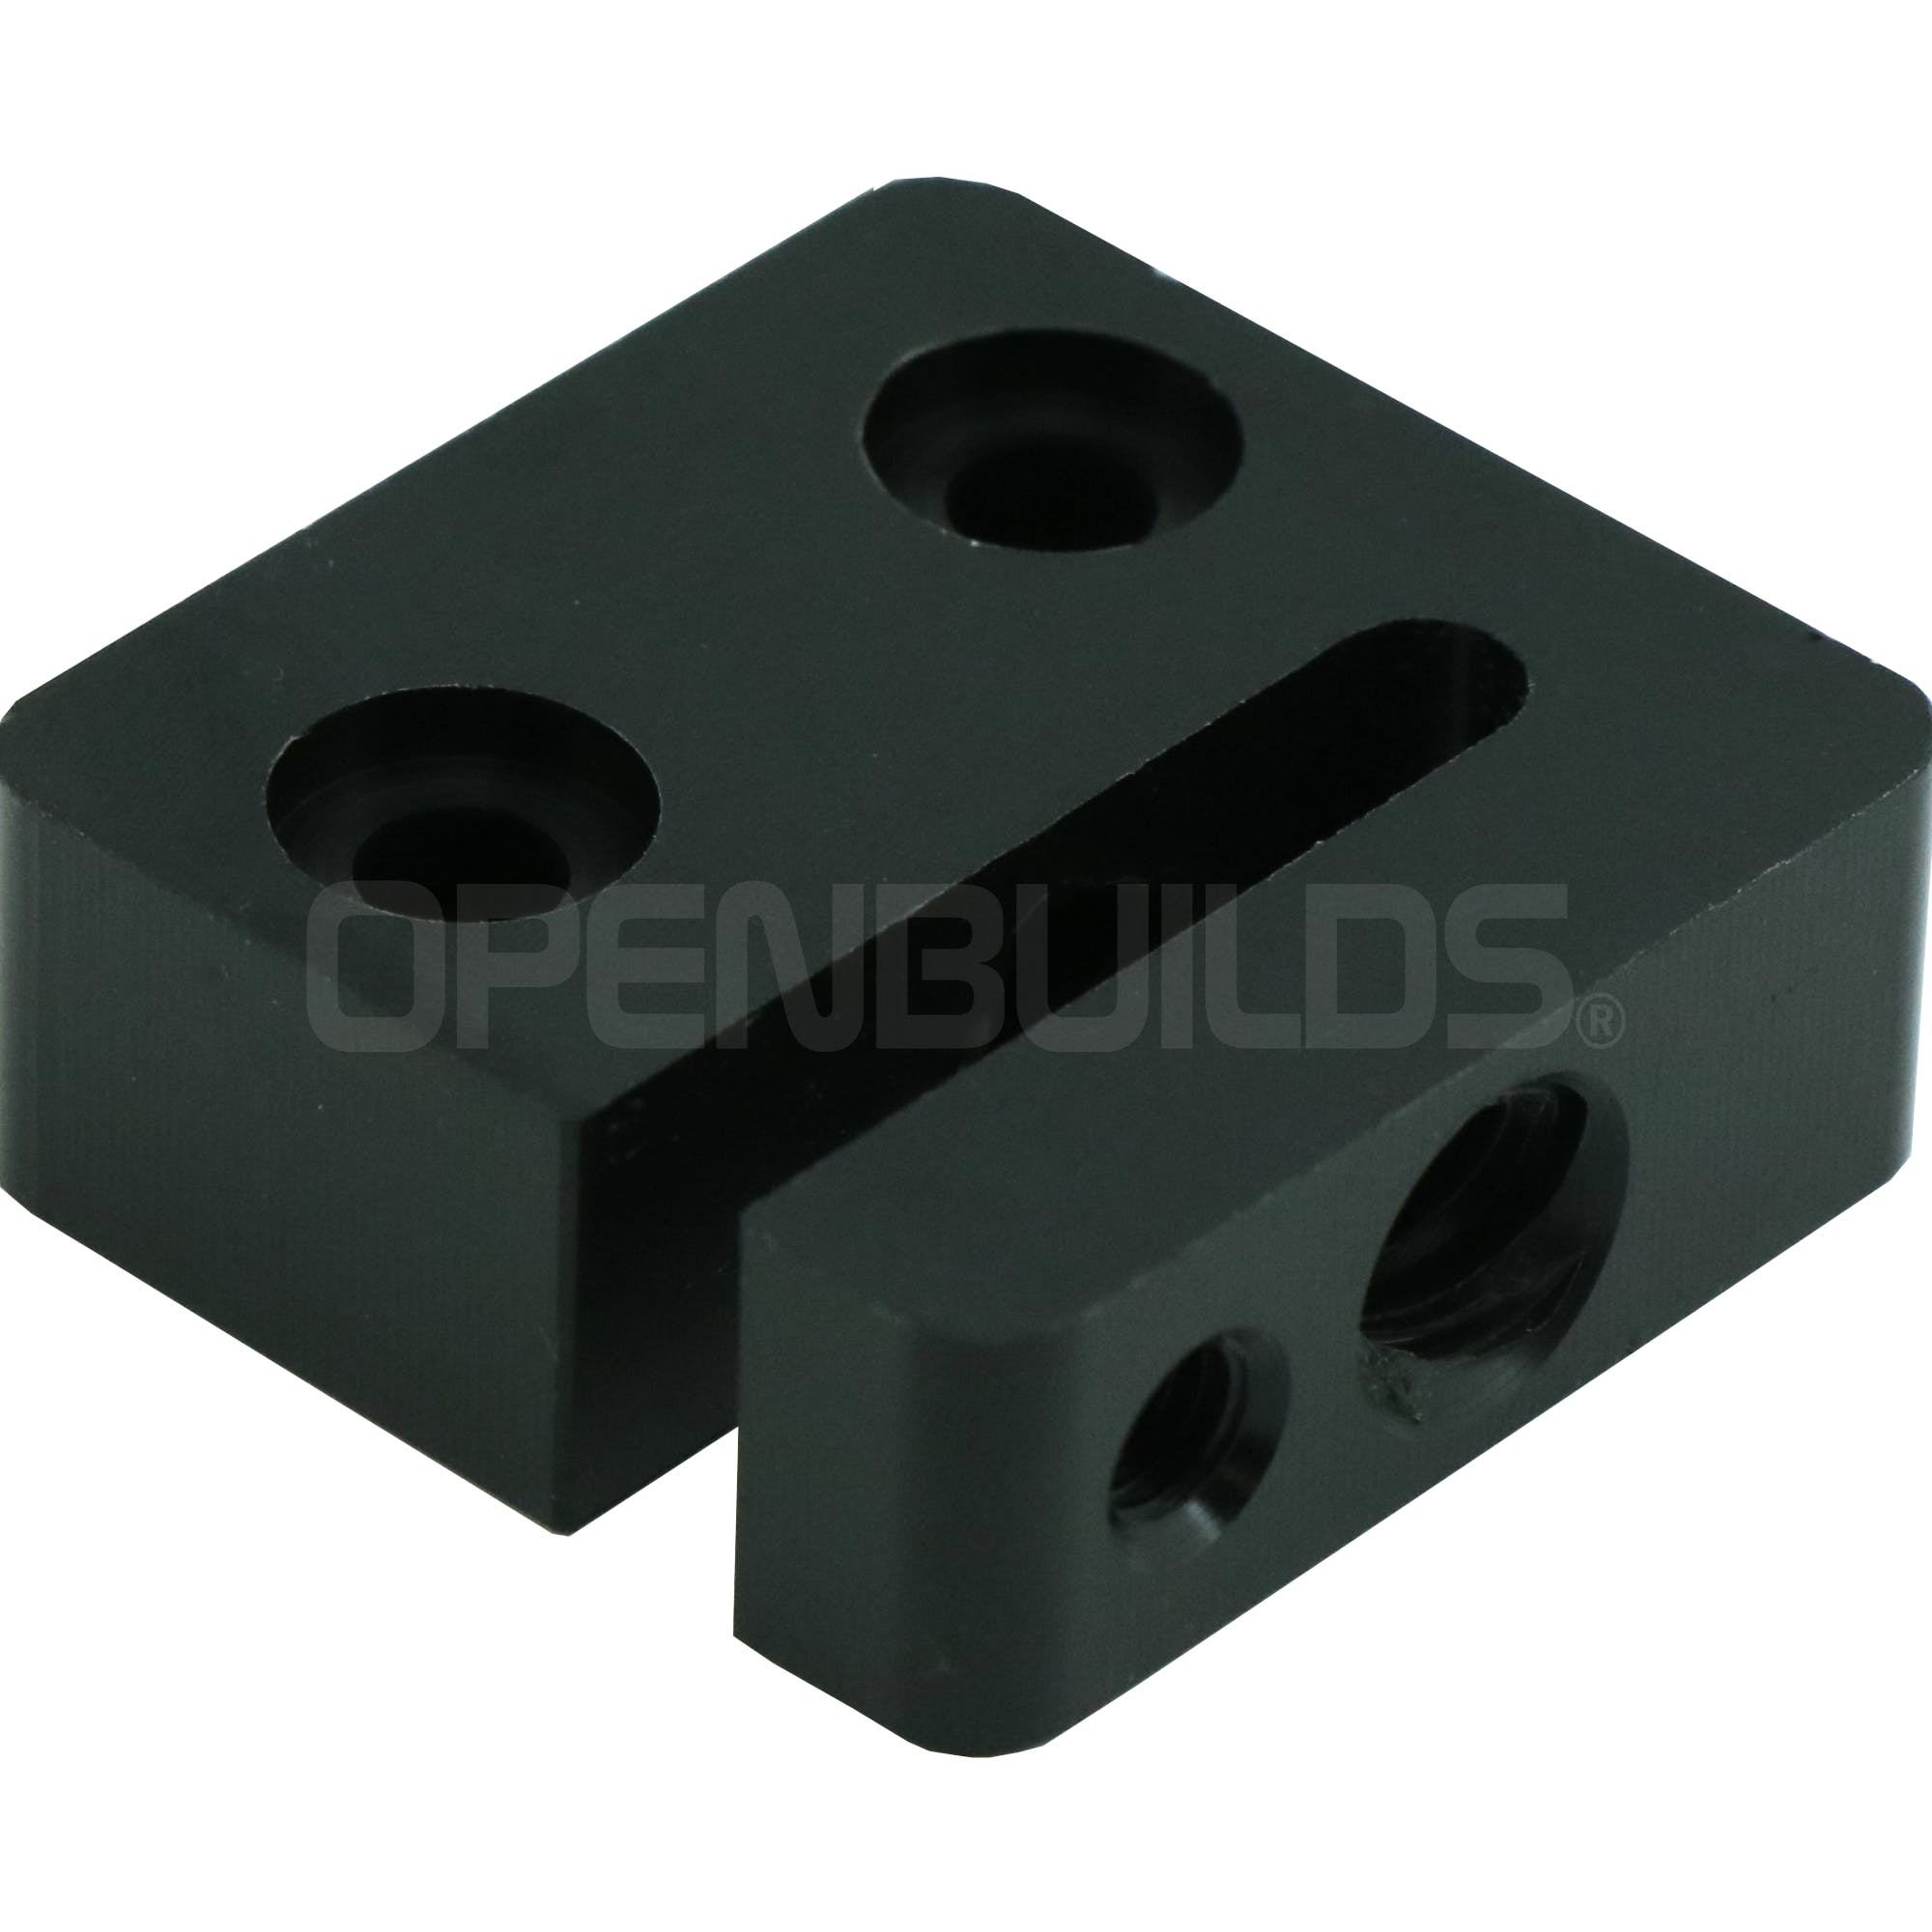 Anti backlash nut block wmchwwbx8k